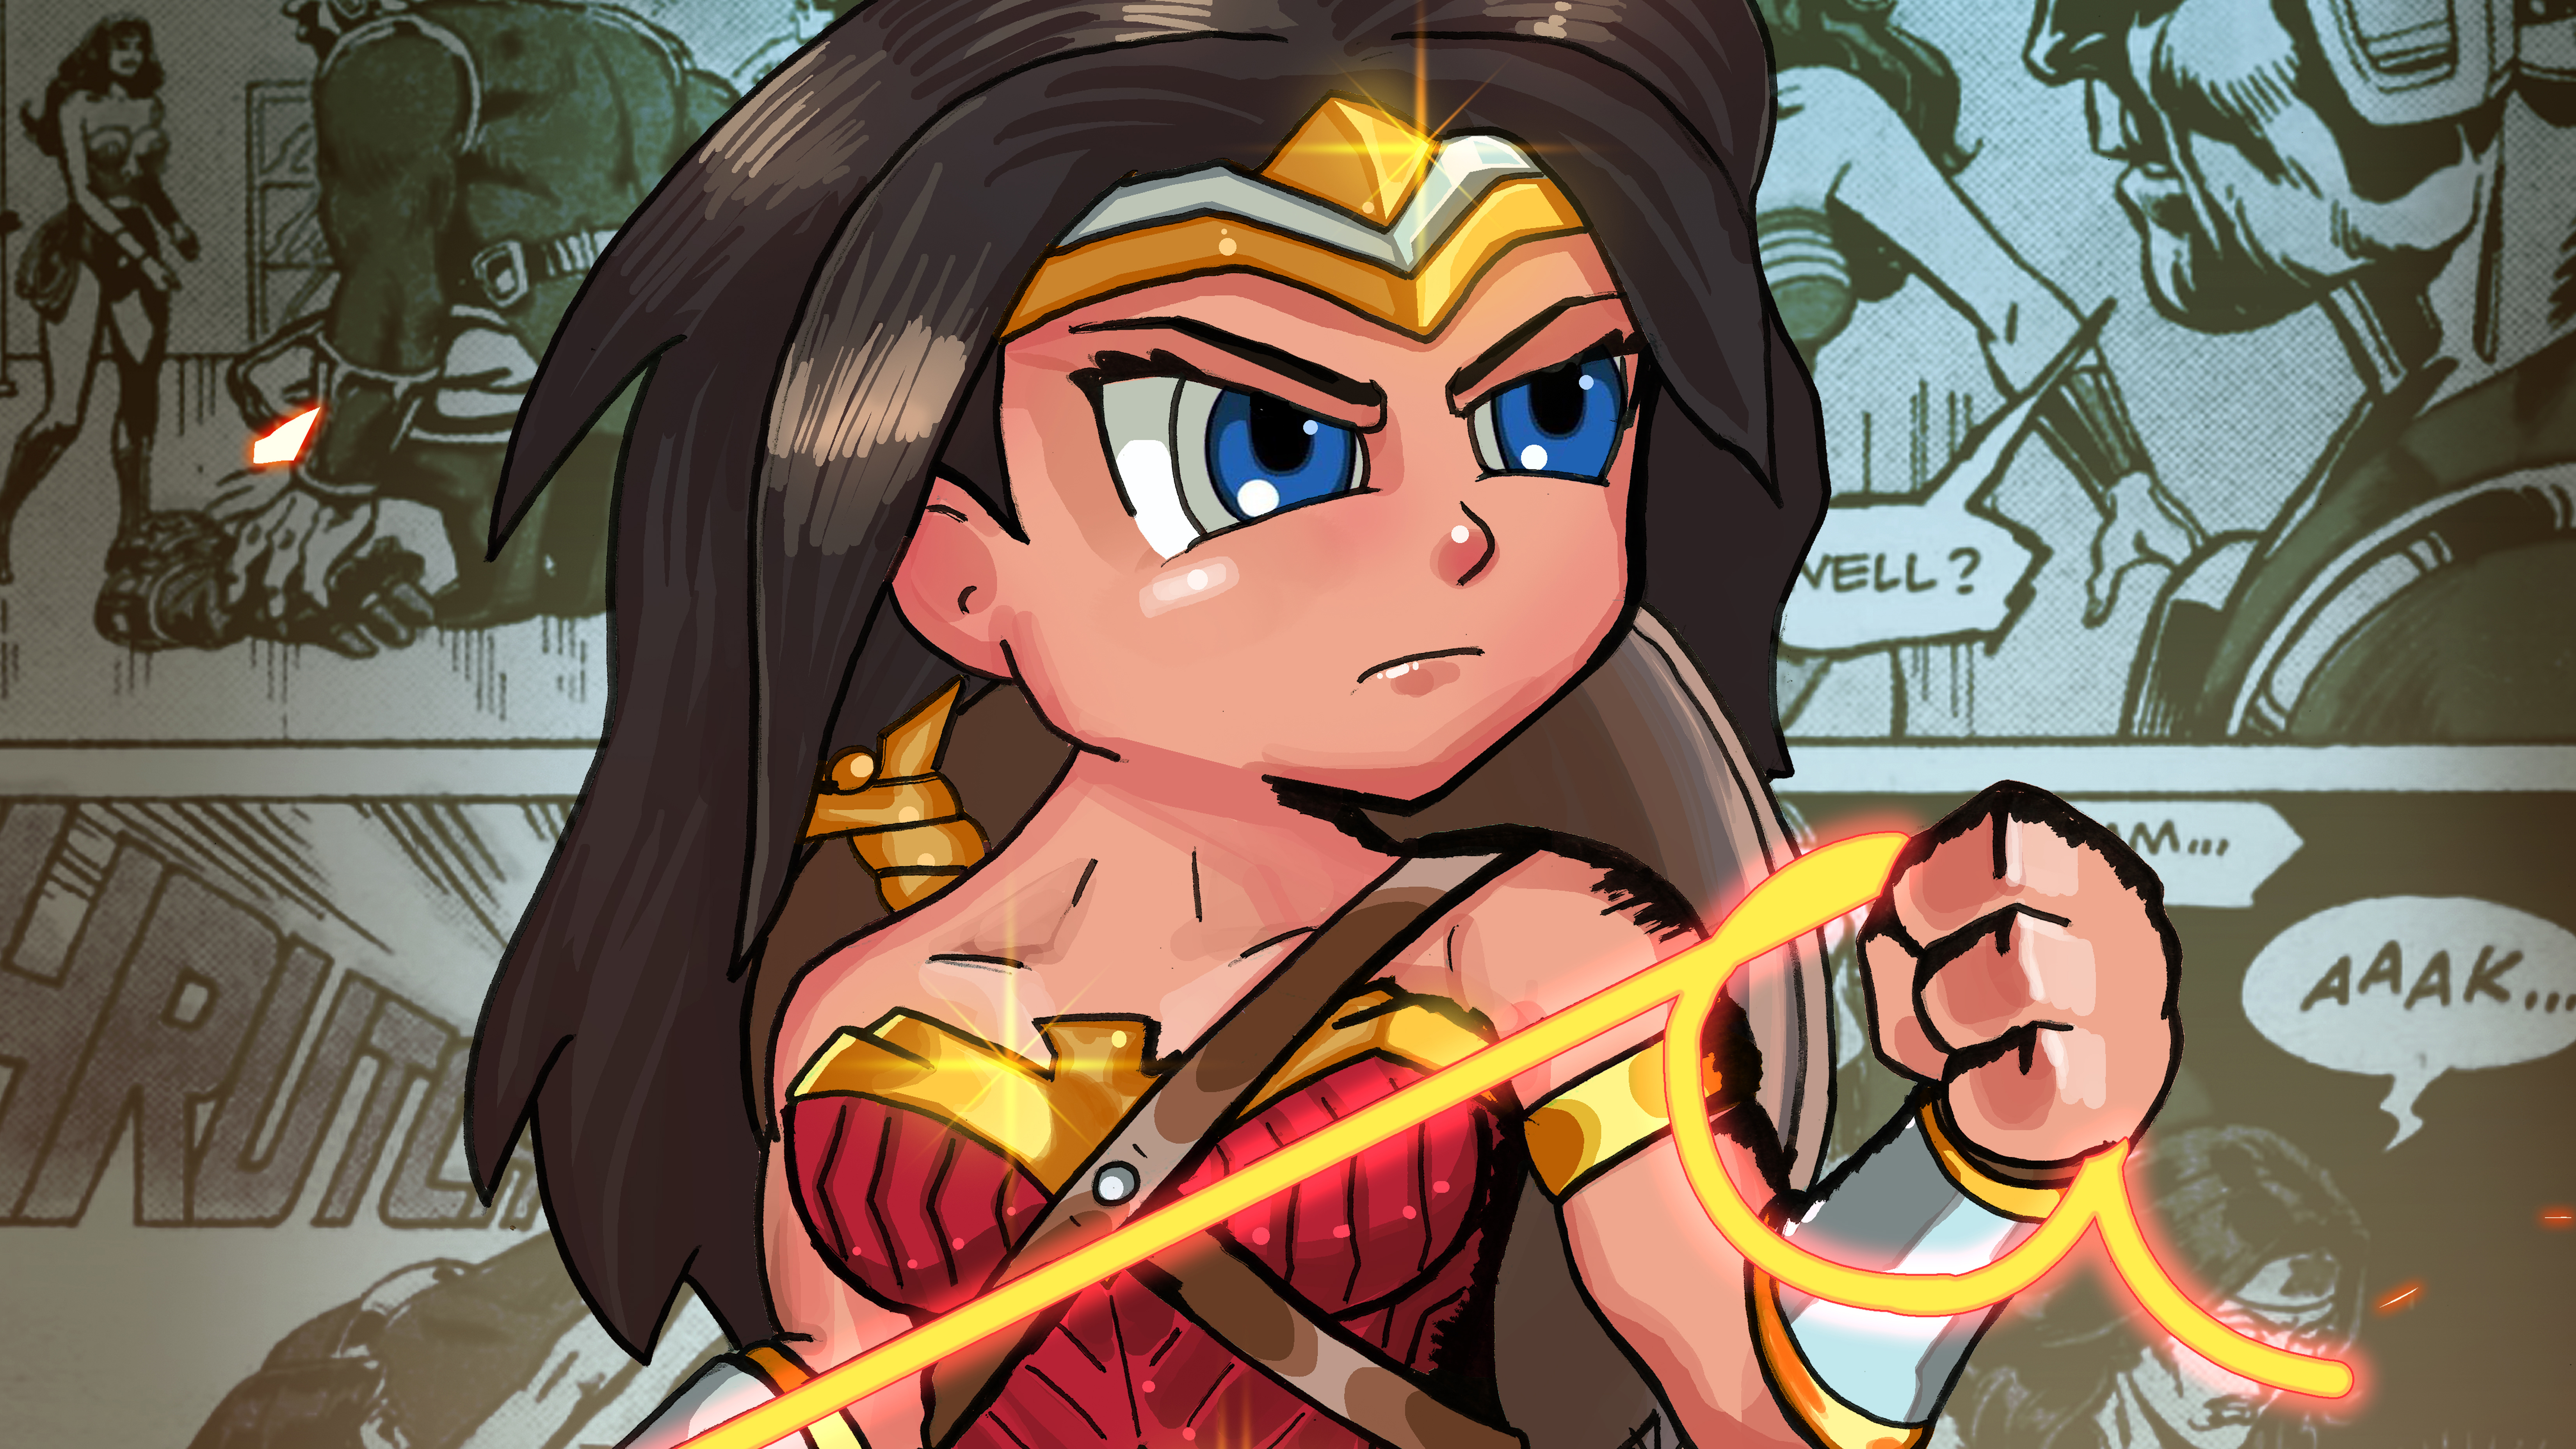 Chibi Wonder Woman.jpg